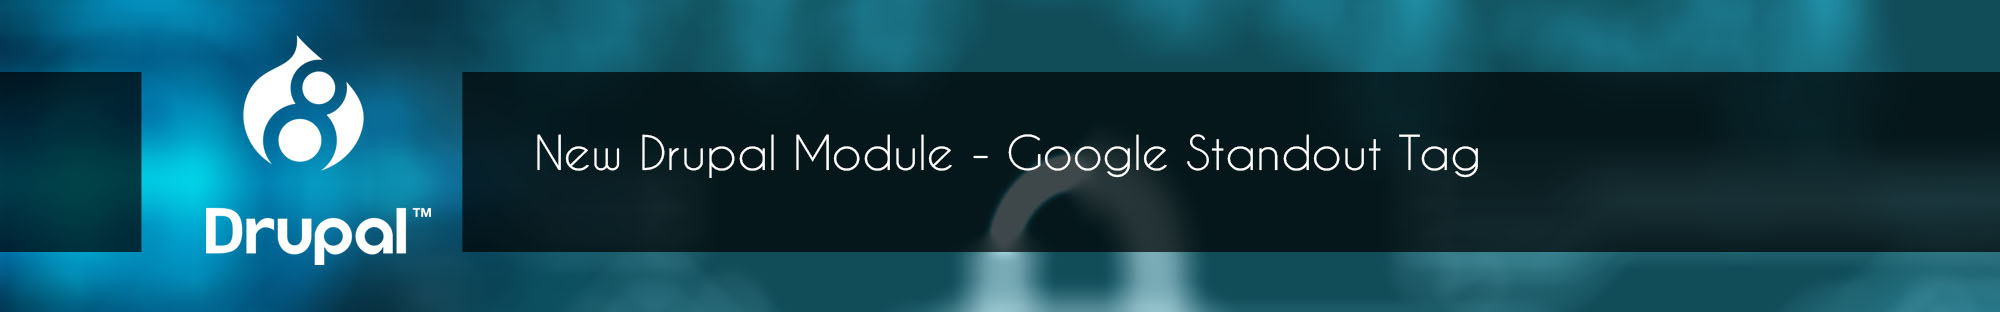 New Drupal Module - Google Standout Tag_Blog_0